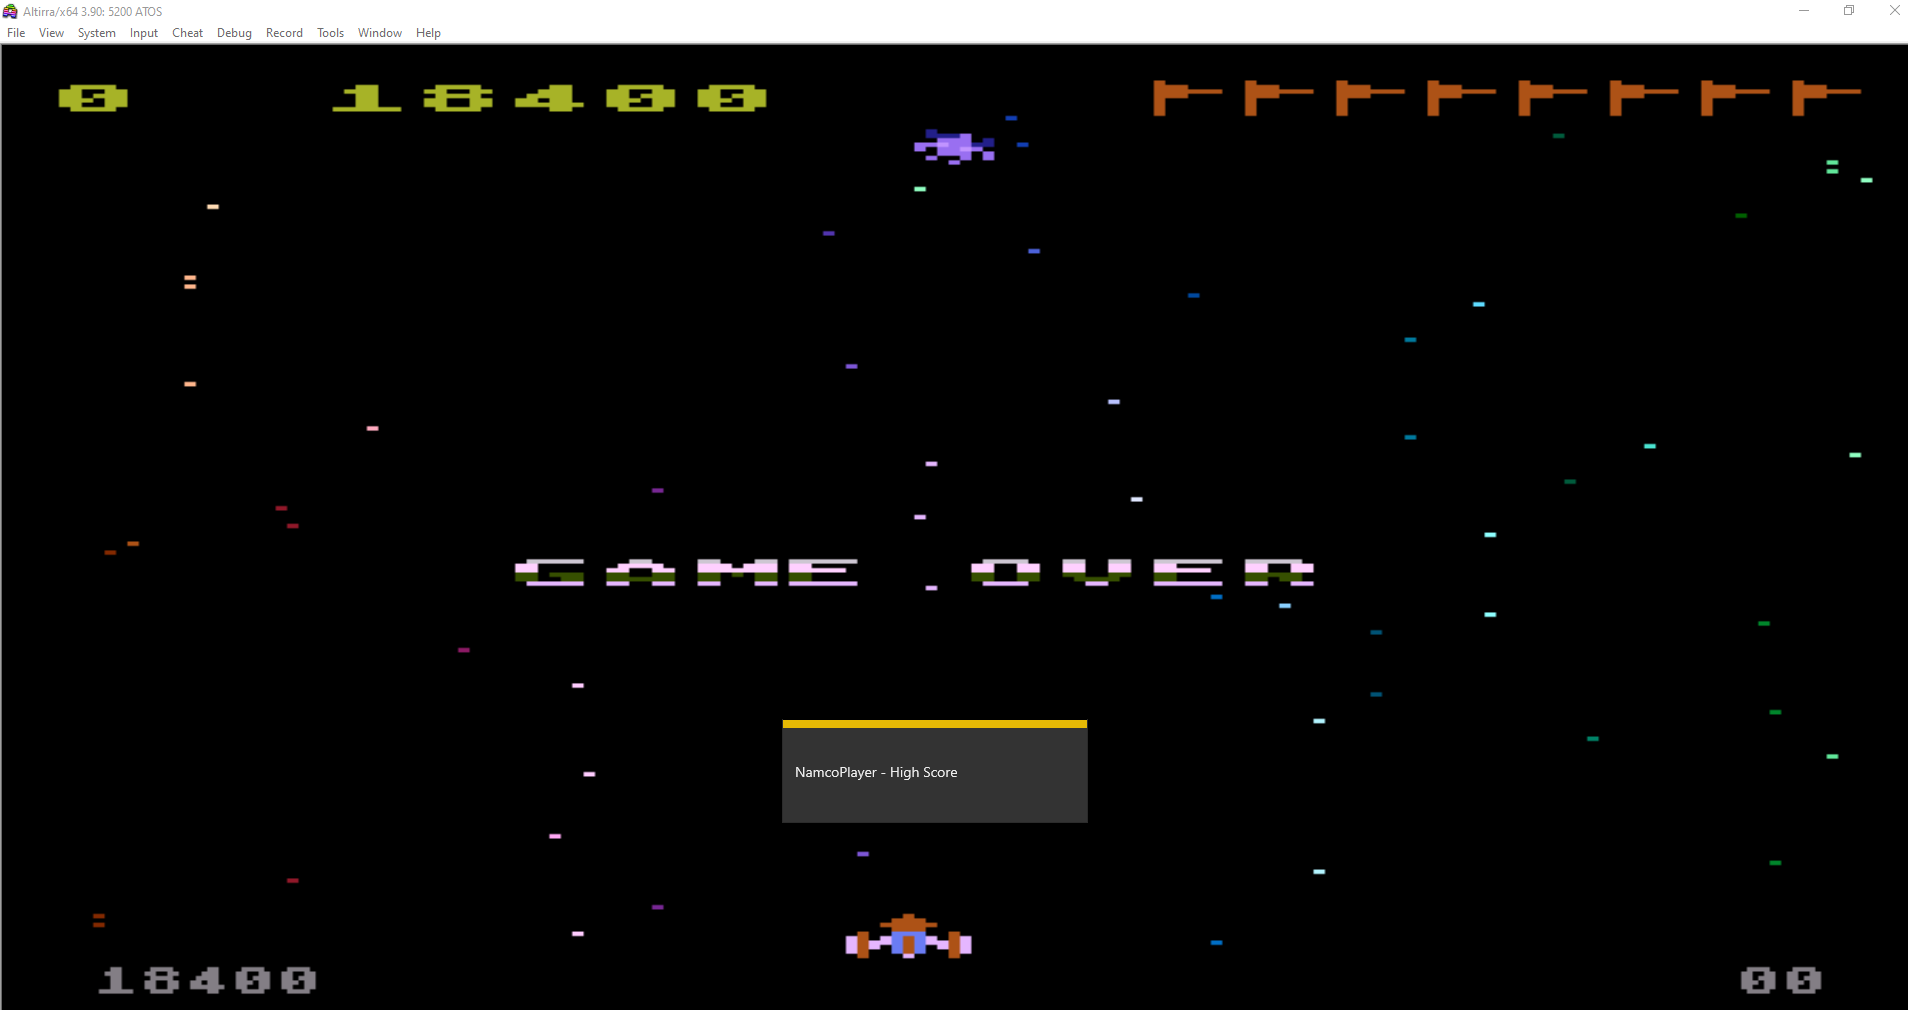 NamcoPlayer: Galaxian: Skill Level 1 (Atari 5200 Emulated) 18,400 points on 2020-10-30 16:30:53